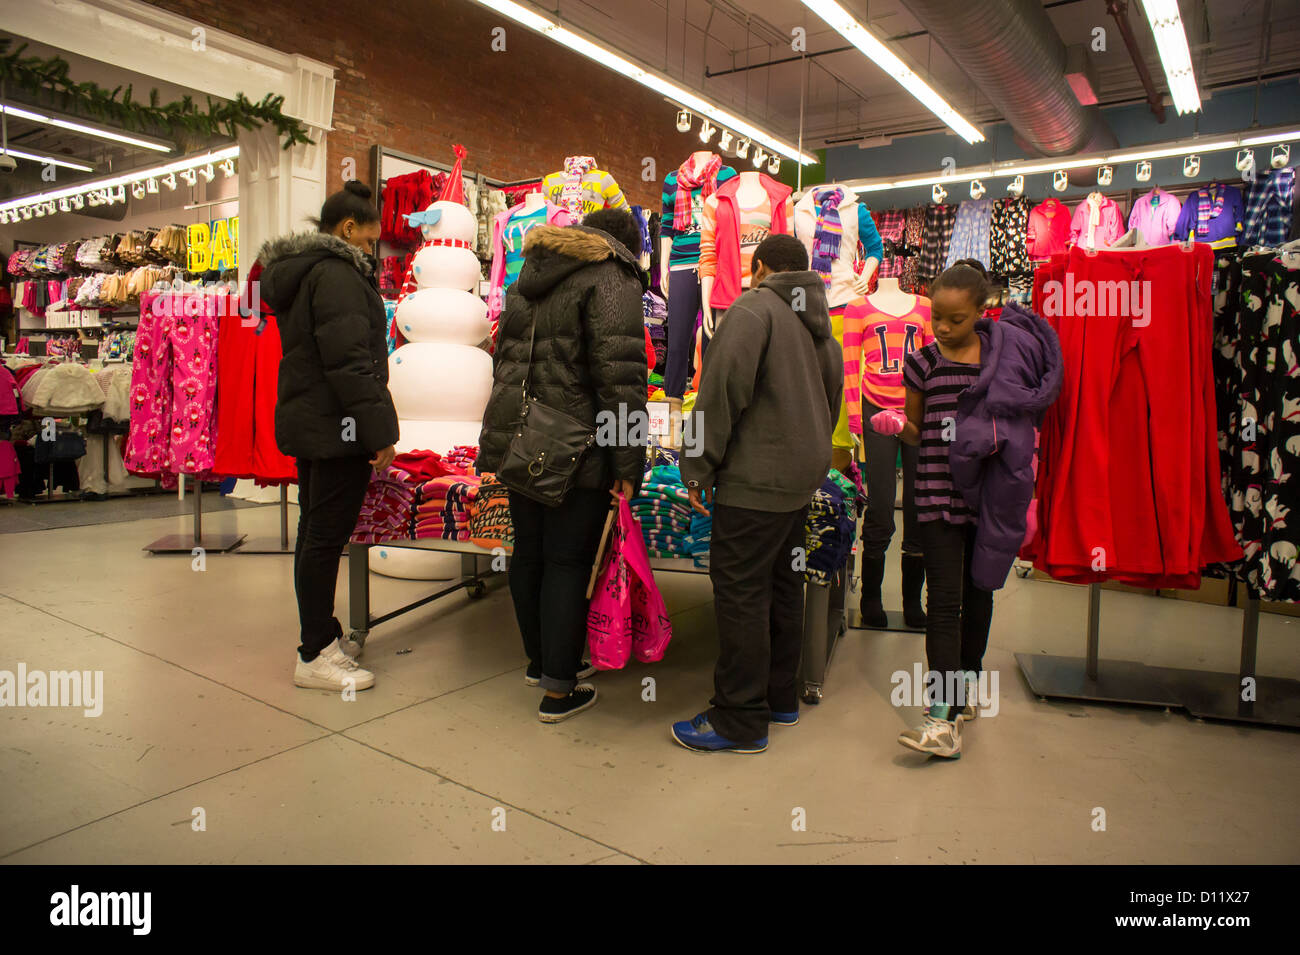 Shopping in an Old Navy store in the New York neighborhood of Soho ...